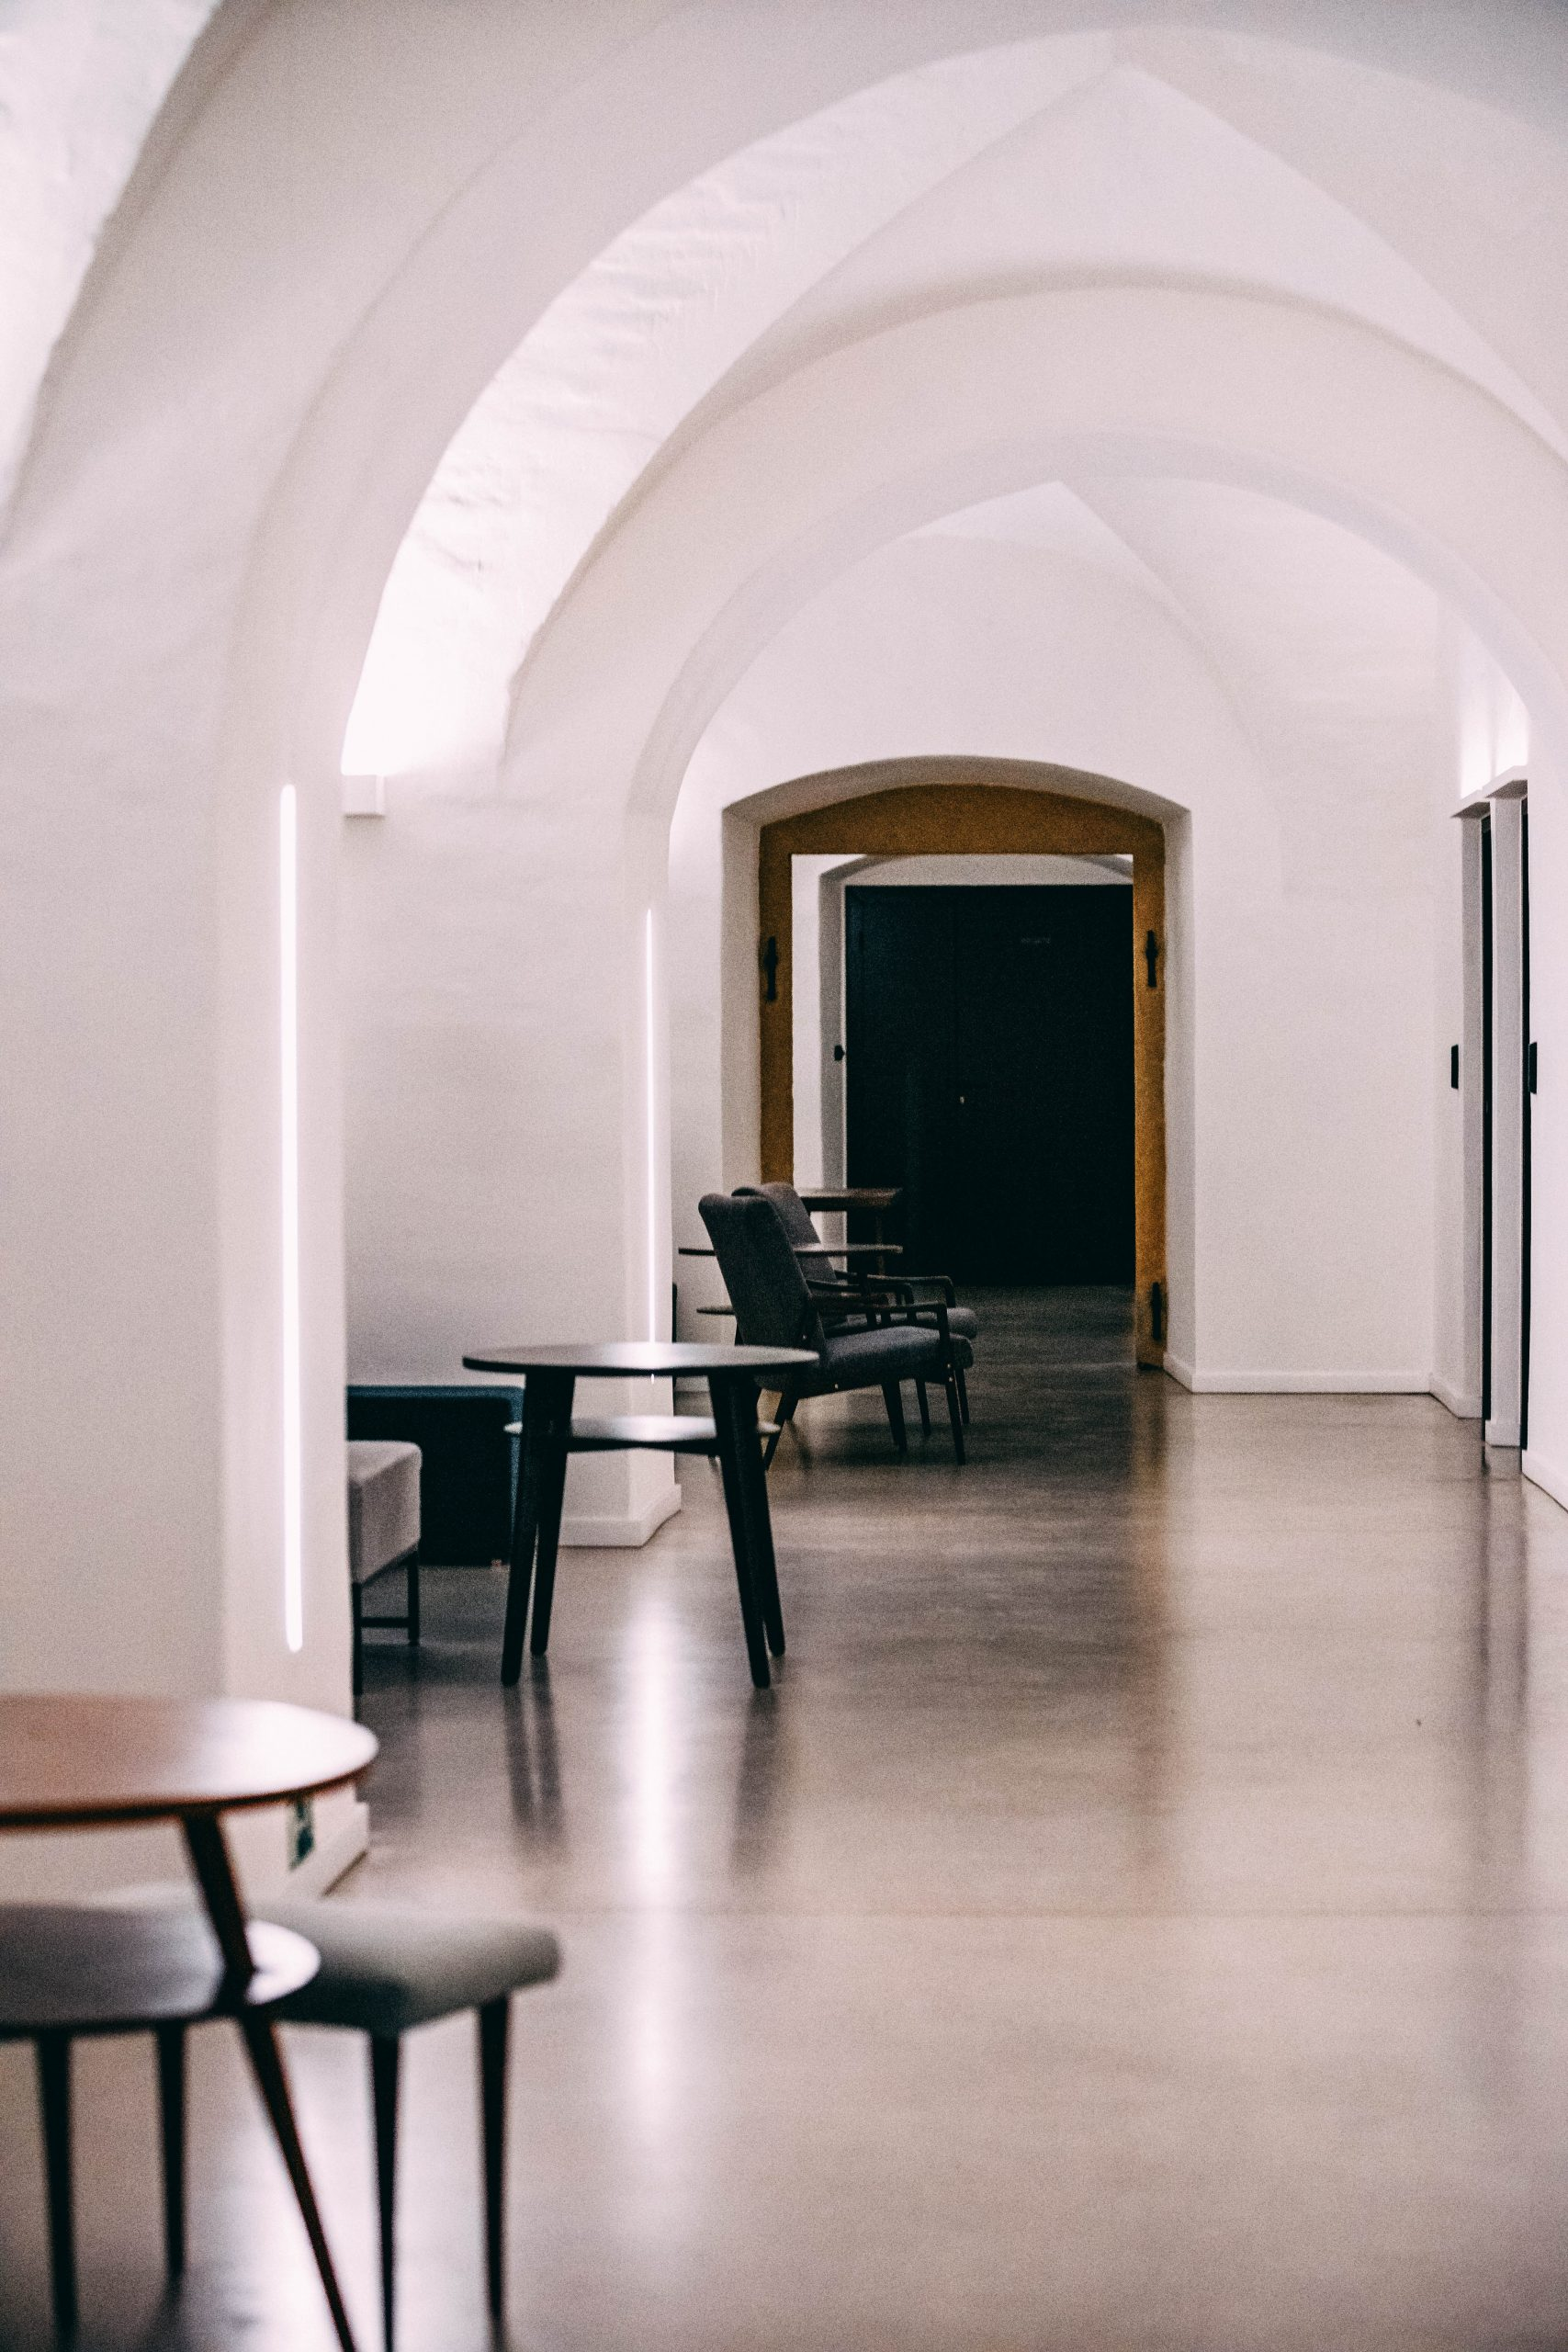 The Pros and Cons of a Polished Concrete Floor